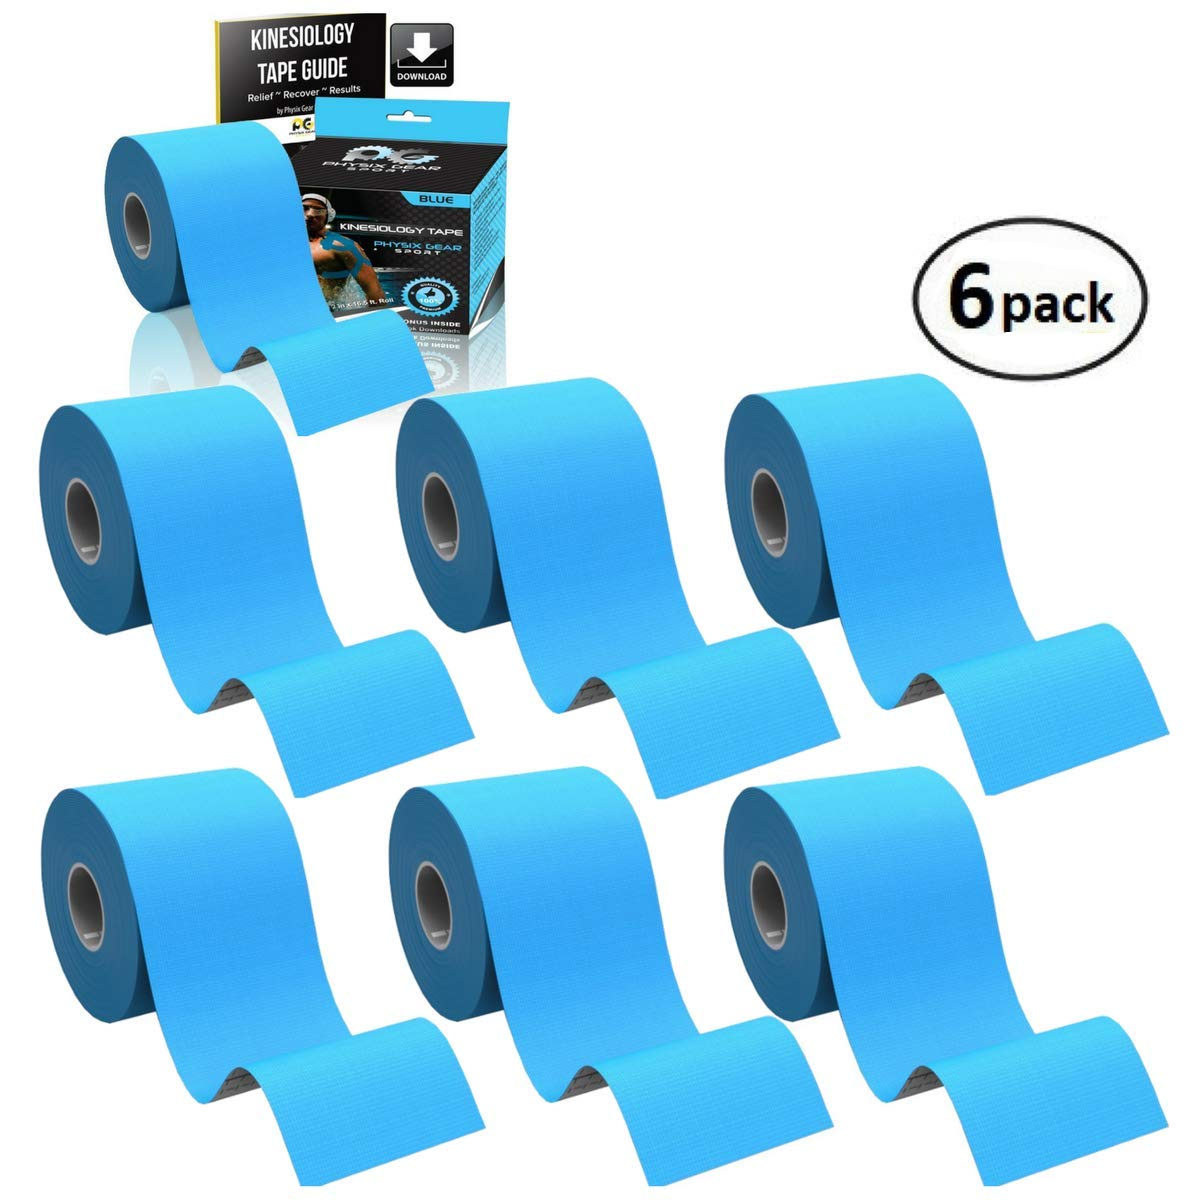 Physix Gear Sport 6 Pack Kinesiology Tape - Free Illustrated E-Guide - 16ft Uncut Roll - Best Pain Relief Adhesive for Muscles, Shin Splints Knee & Shoulder - 24/7 Waterproof Therapeutic Aid (Blue)